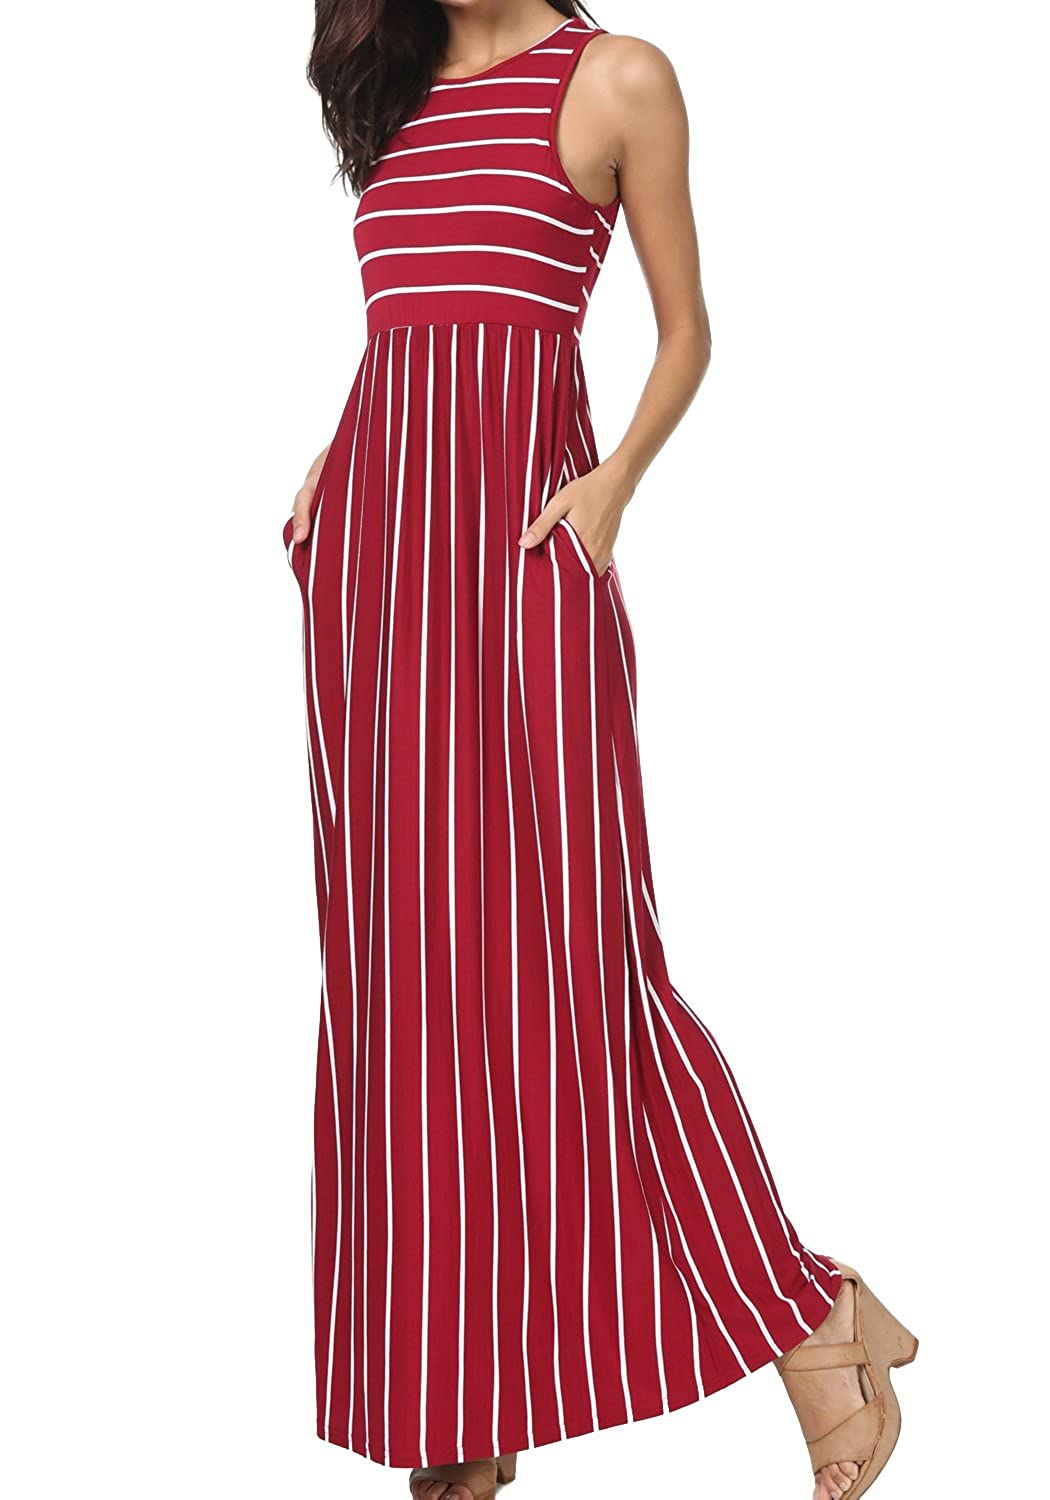 76b0cb7c3c436 Online Cheap wholesale levaca Womens Summer Sleeveless Striped Pockets  Flowy Casual Long Maxi Dress Casual Suppliers